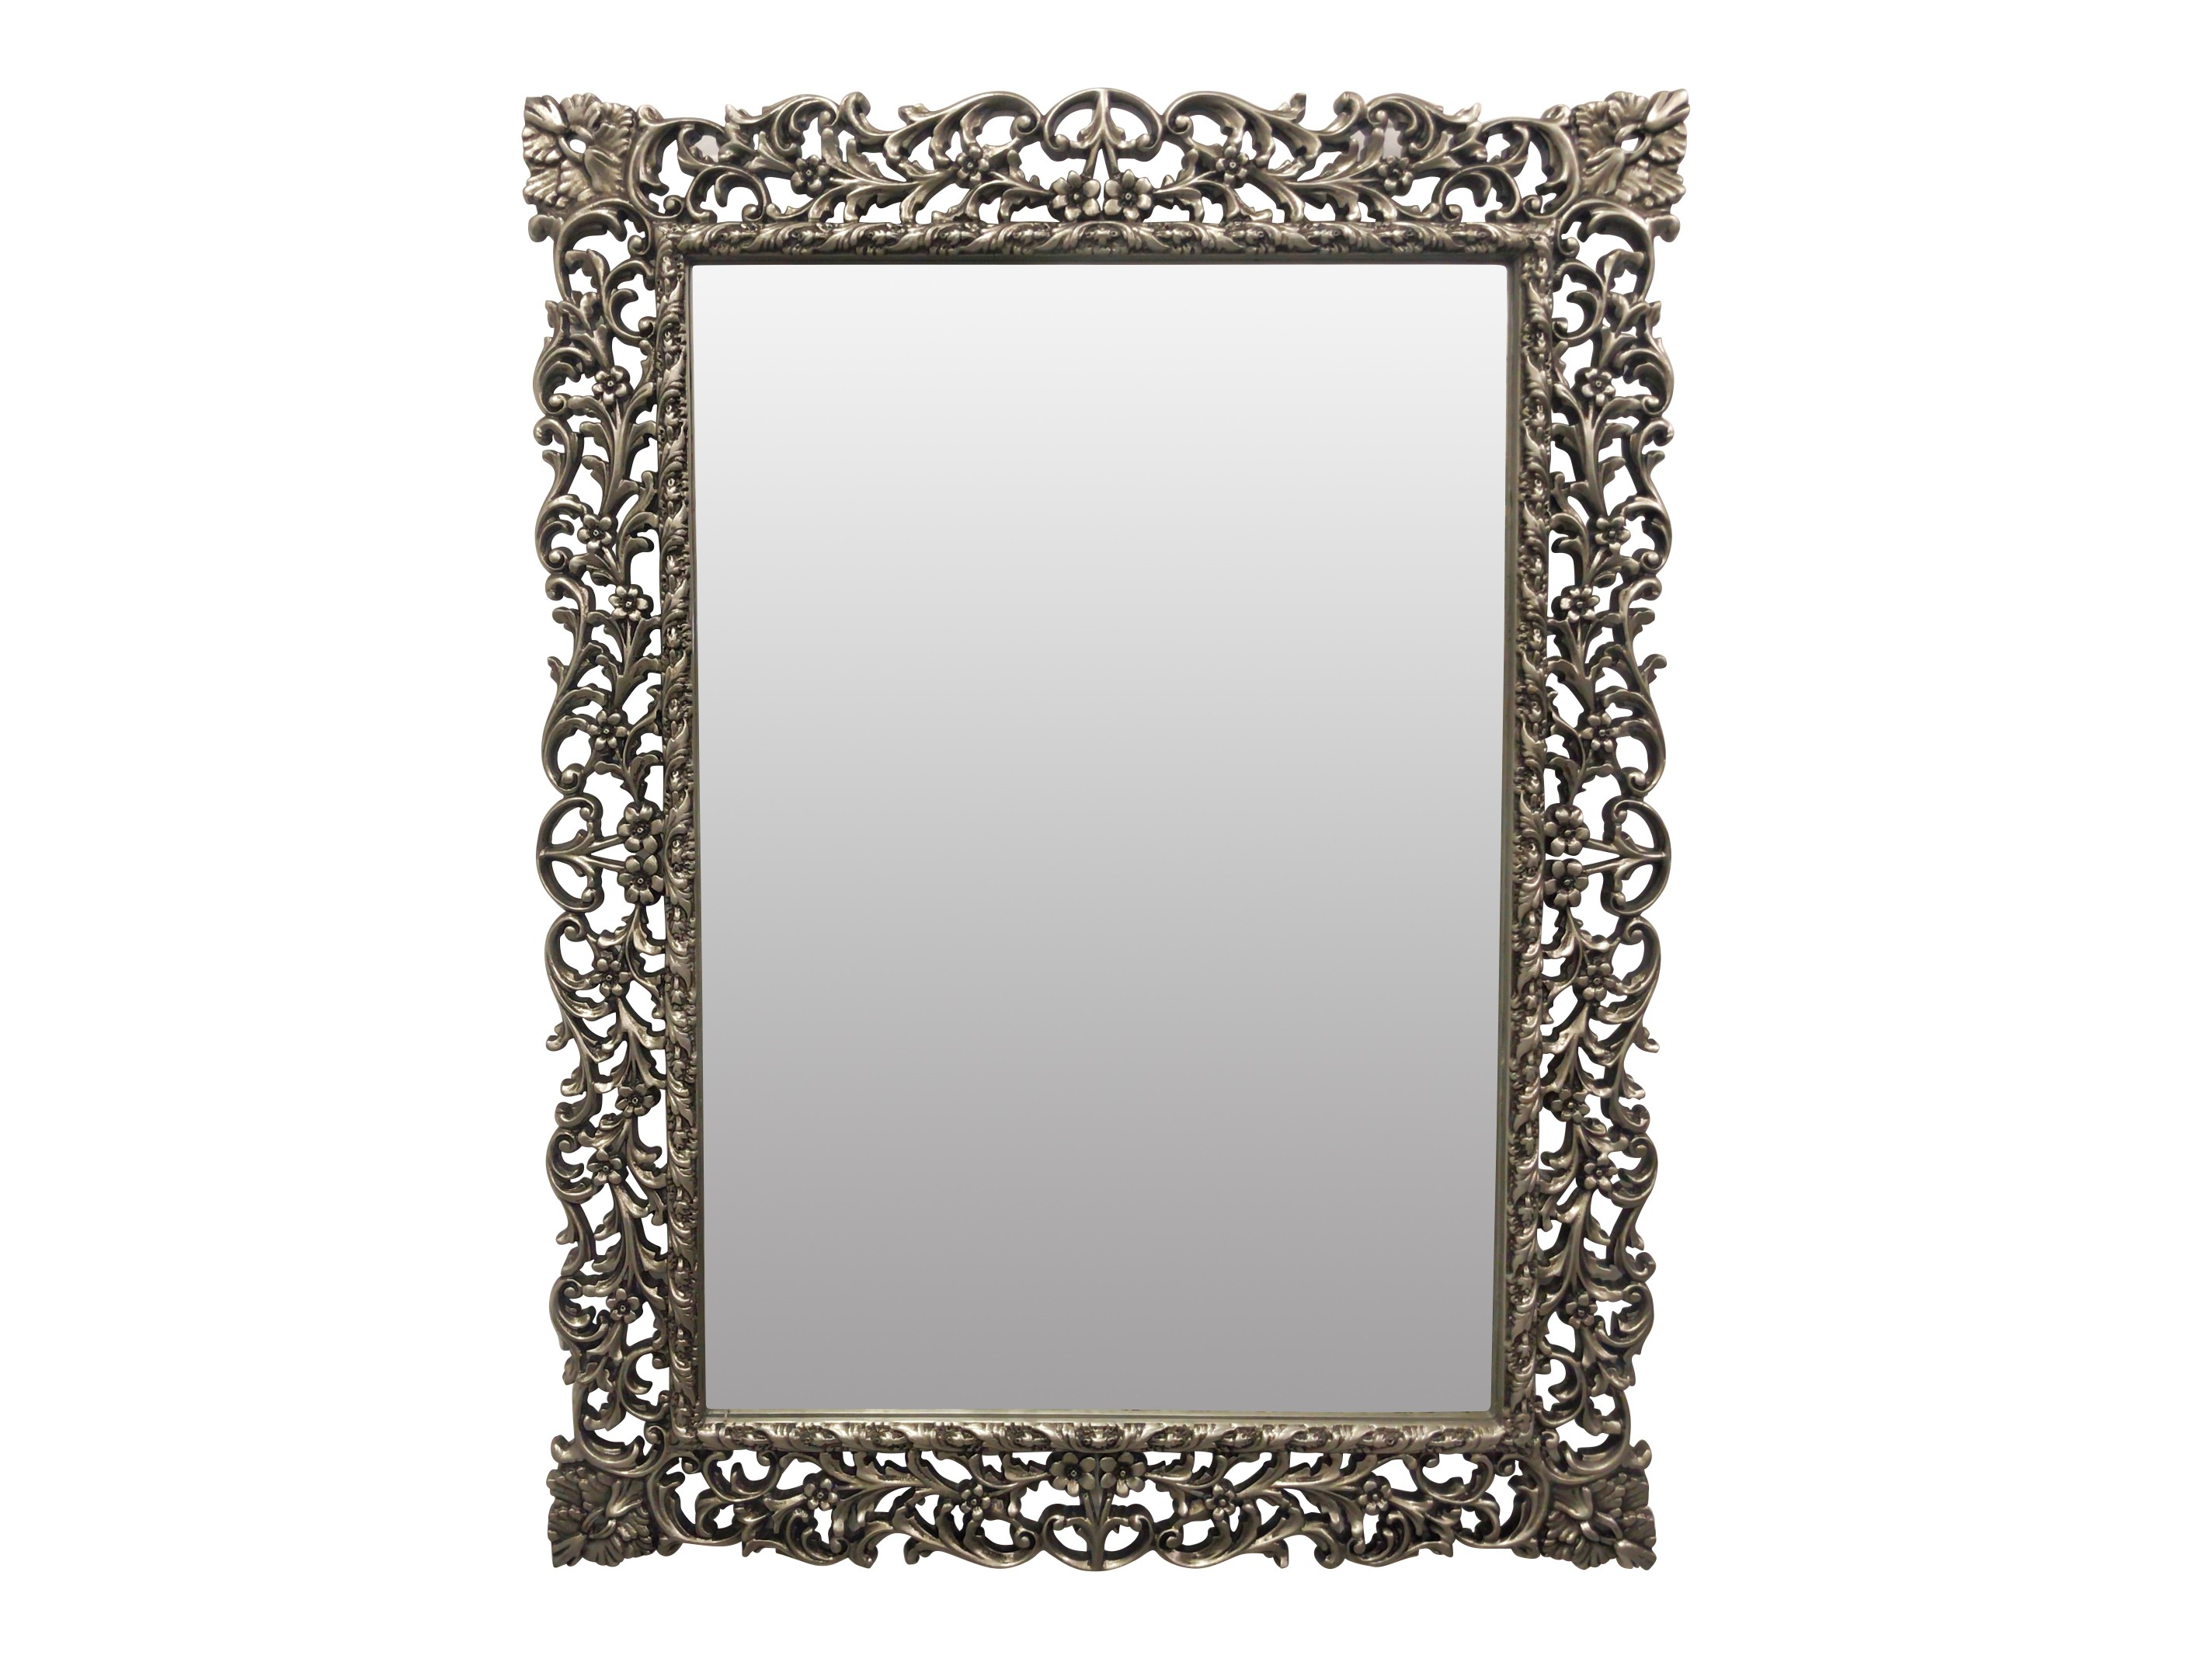 Œillet de poéte , French Style, Silver Leaf ,Hand Carved, Wall Mirror